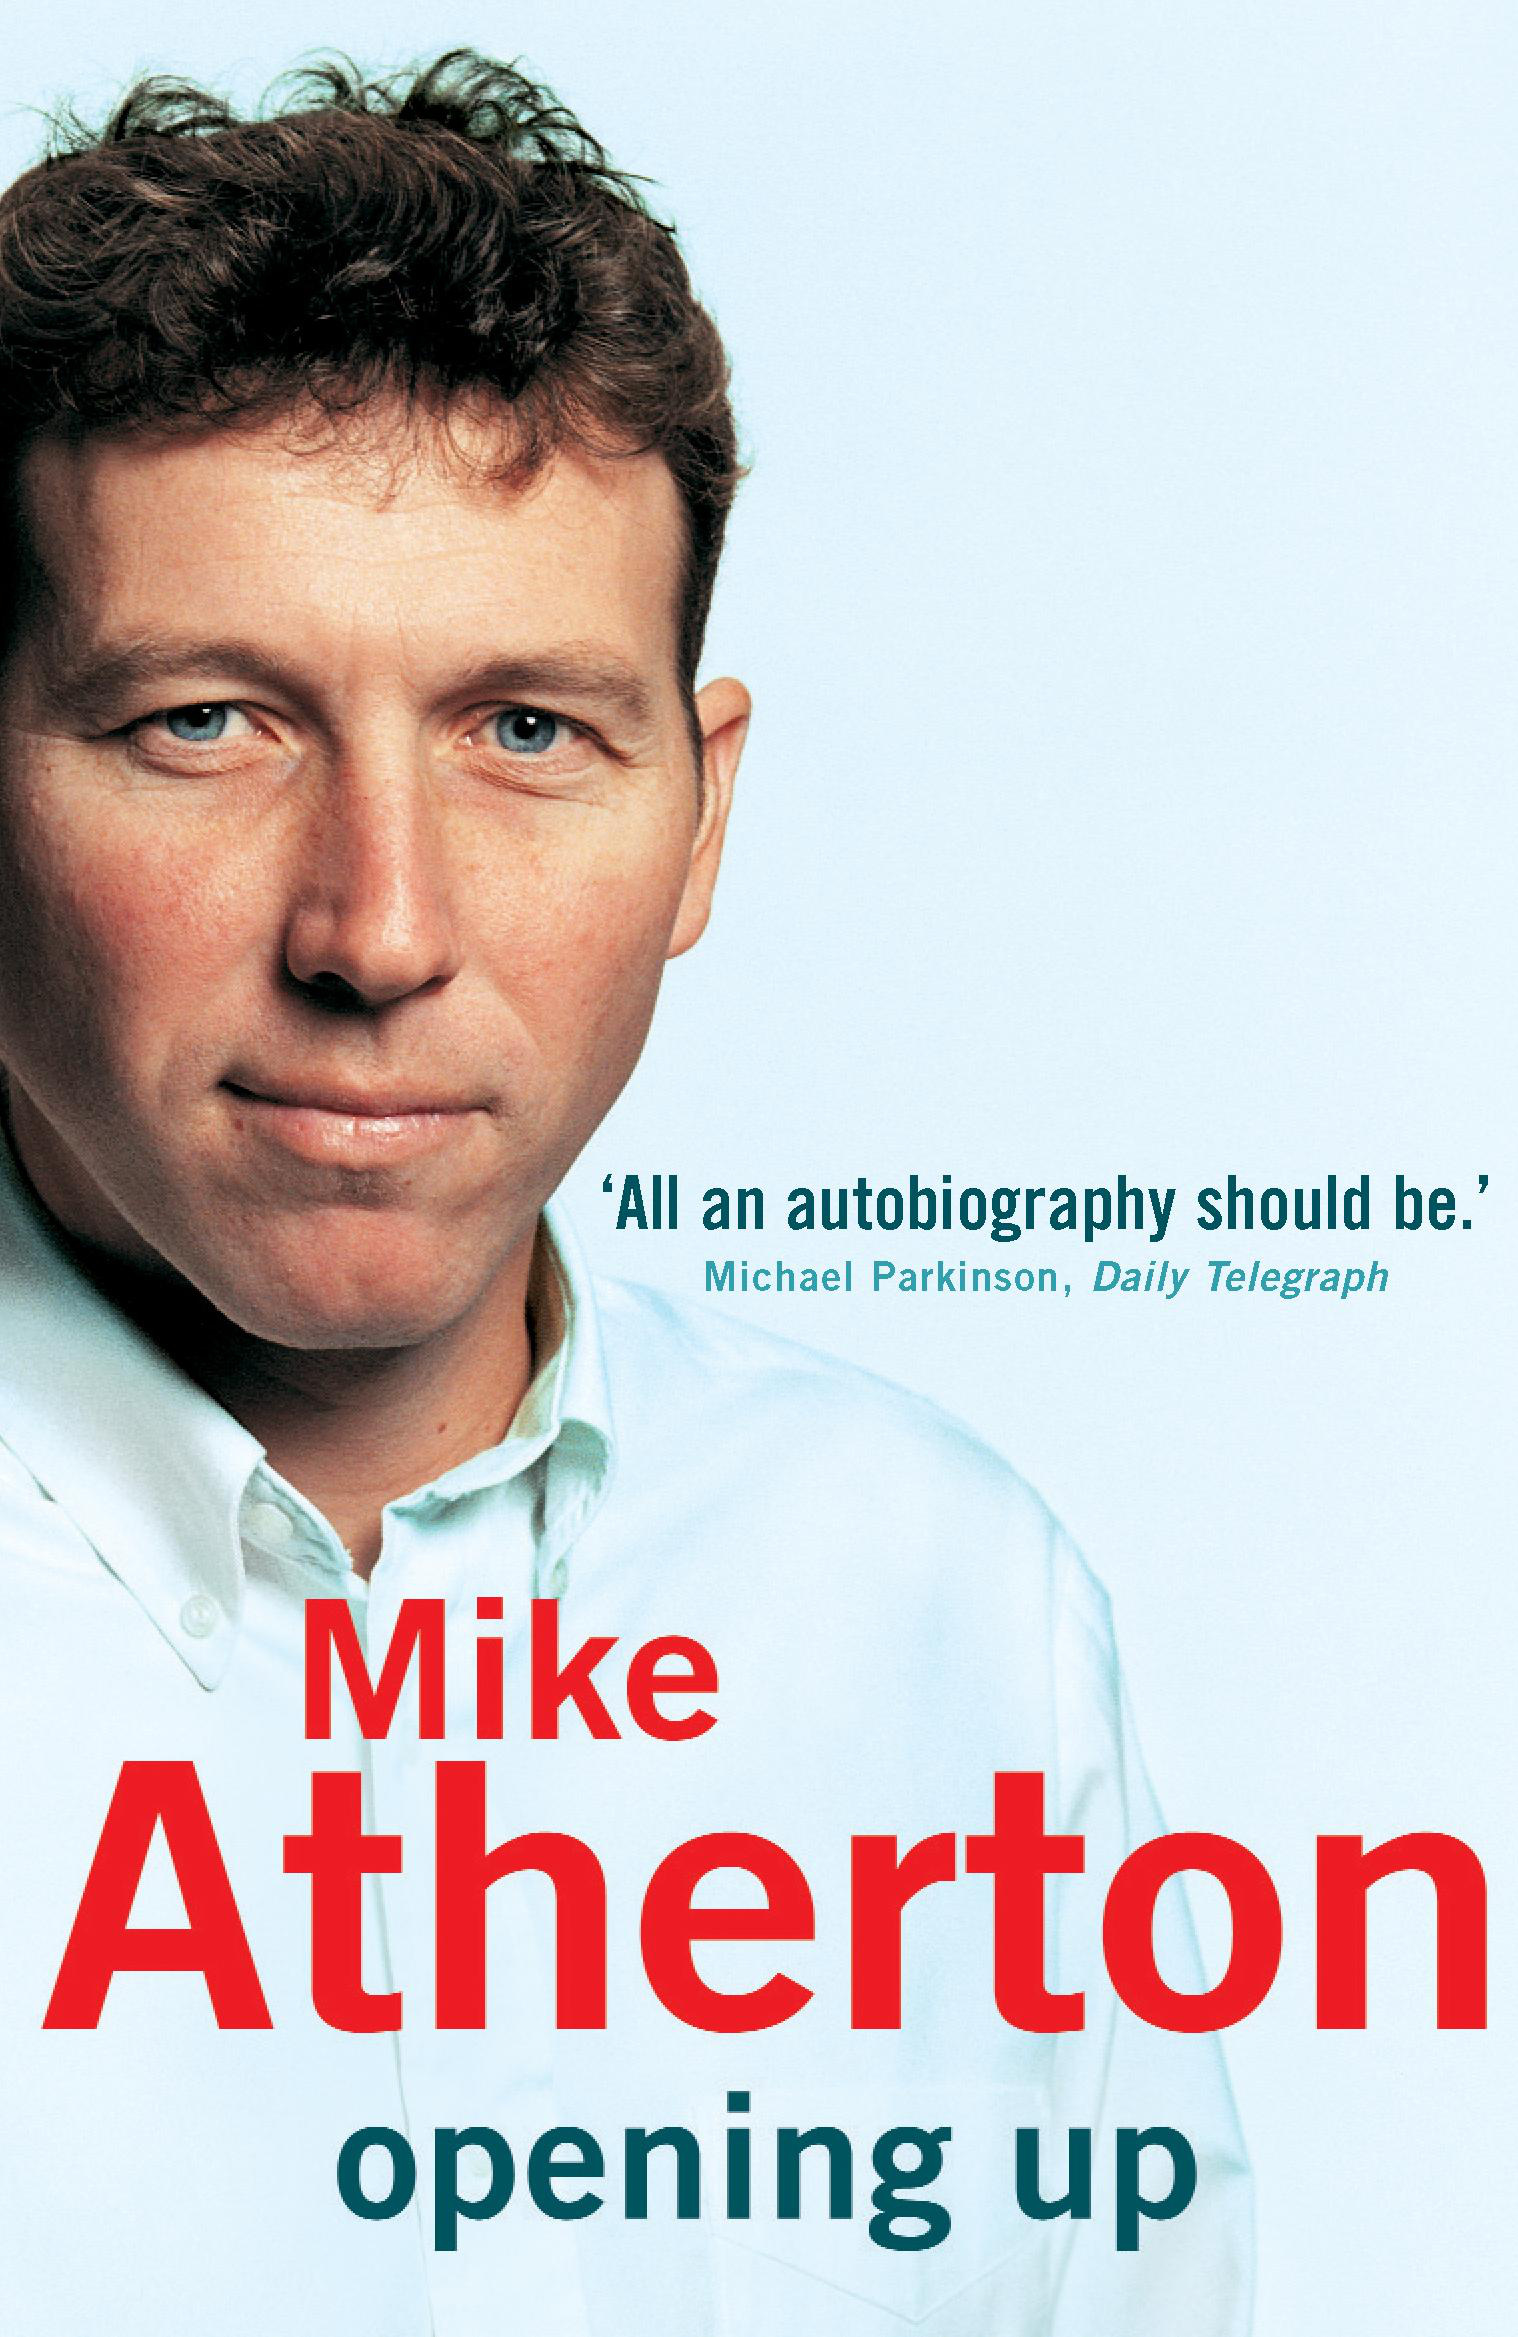 Mike atherton book gambling highest payout slot machines in atlantic city